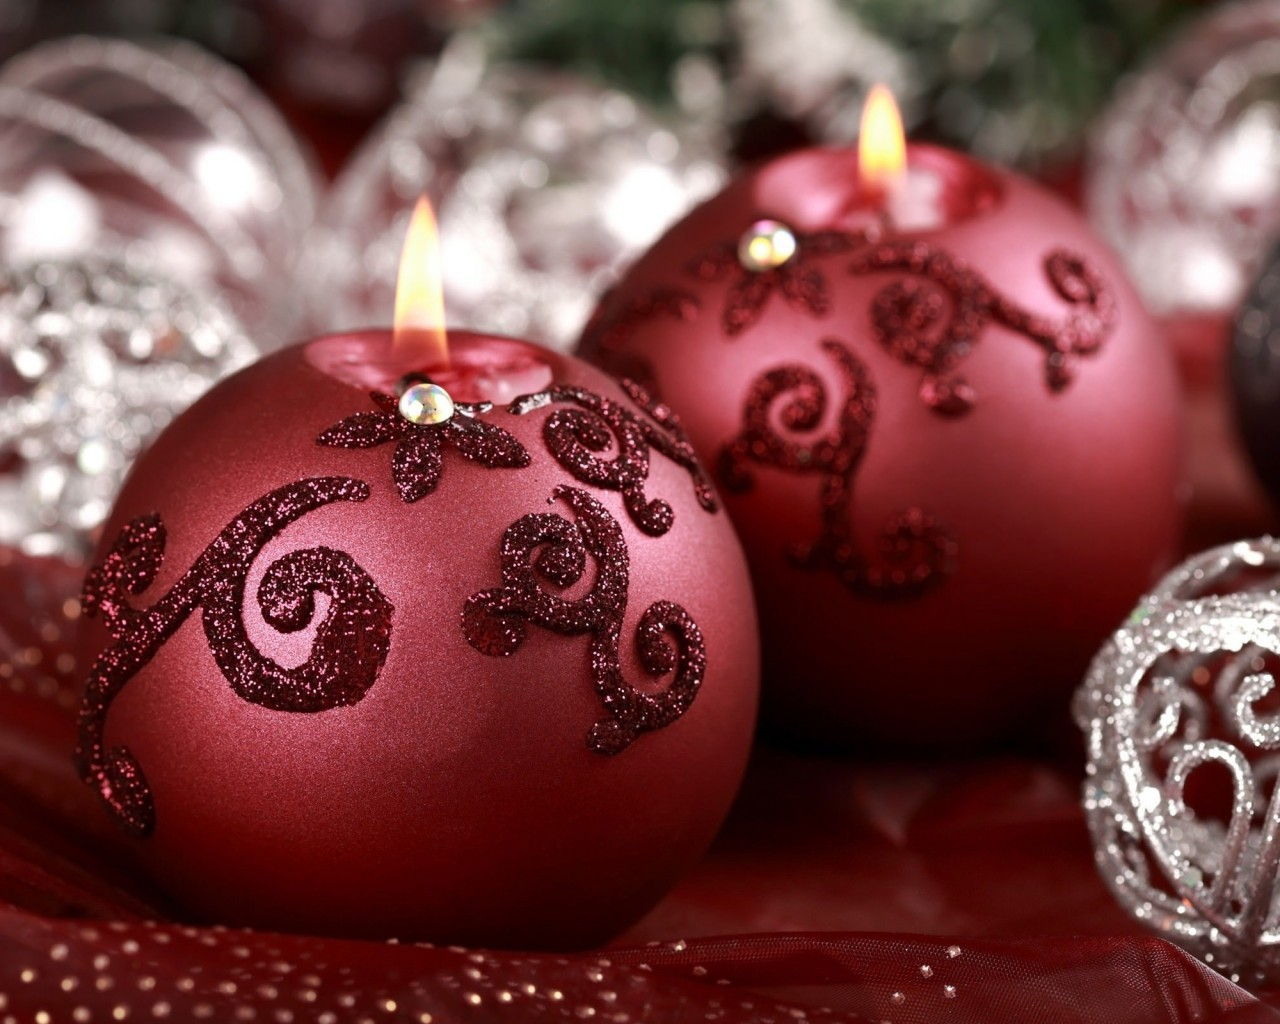 Red Christmas Ornament Ball Candles Wallpaper for Desktop 1280x1024